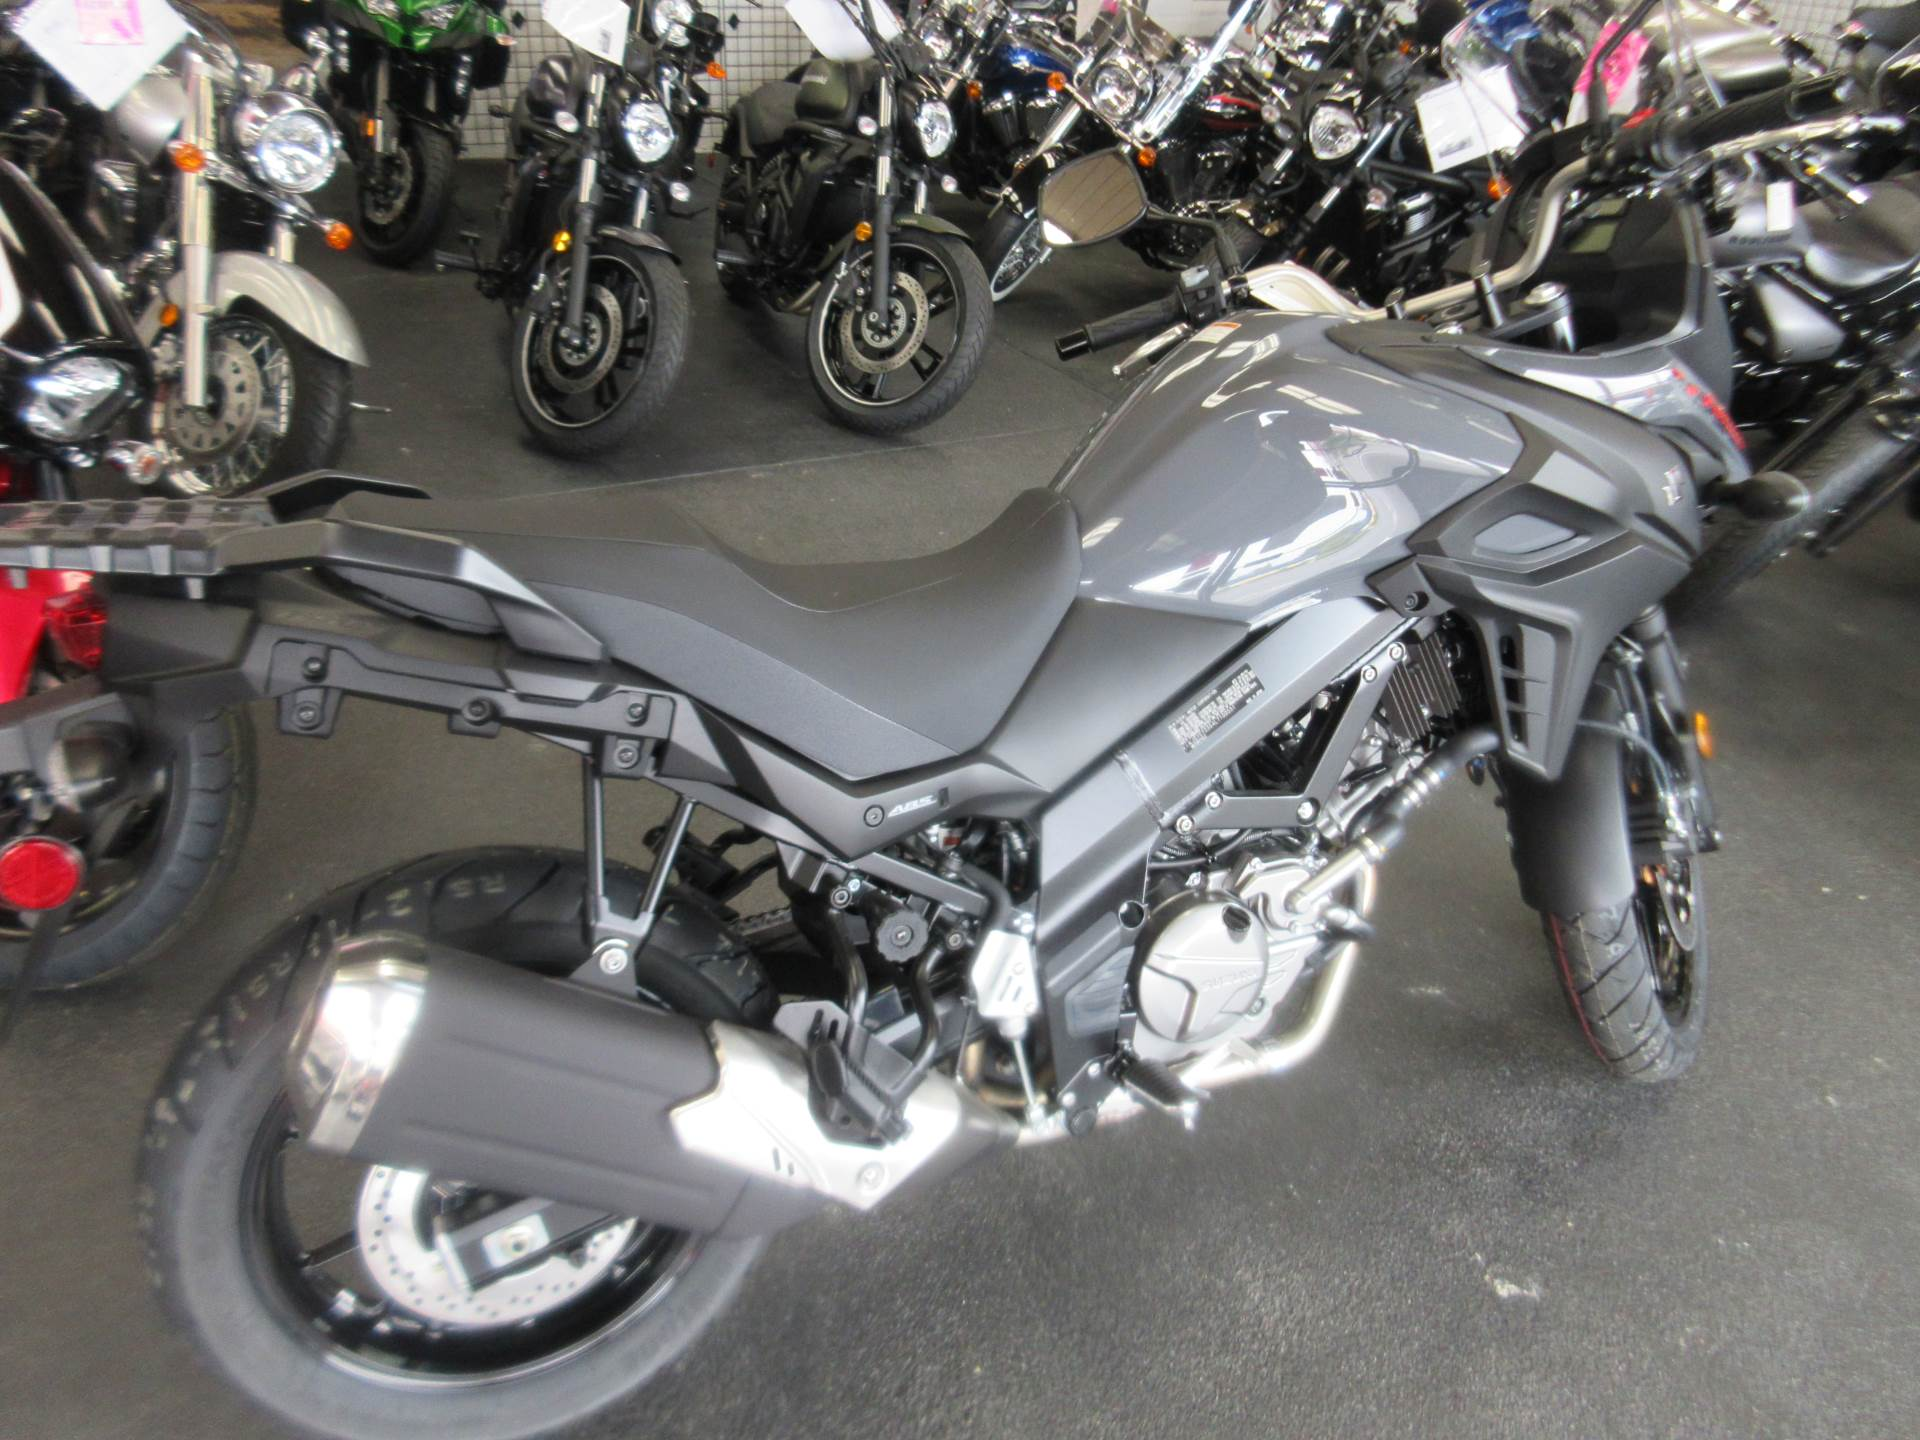 2020 Suzuki V-Strom 650 in Sacramento, California - Photo 4